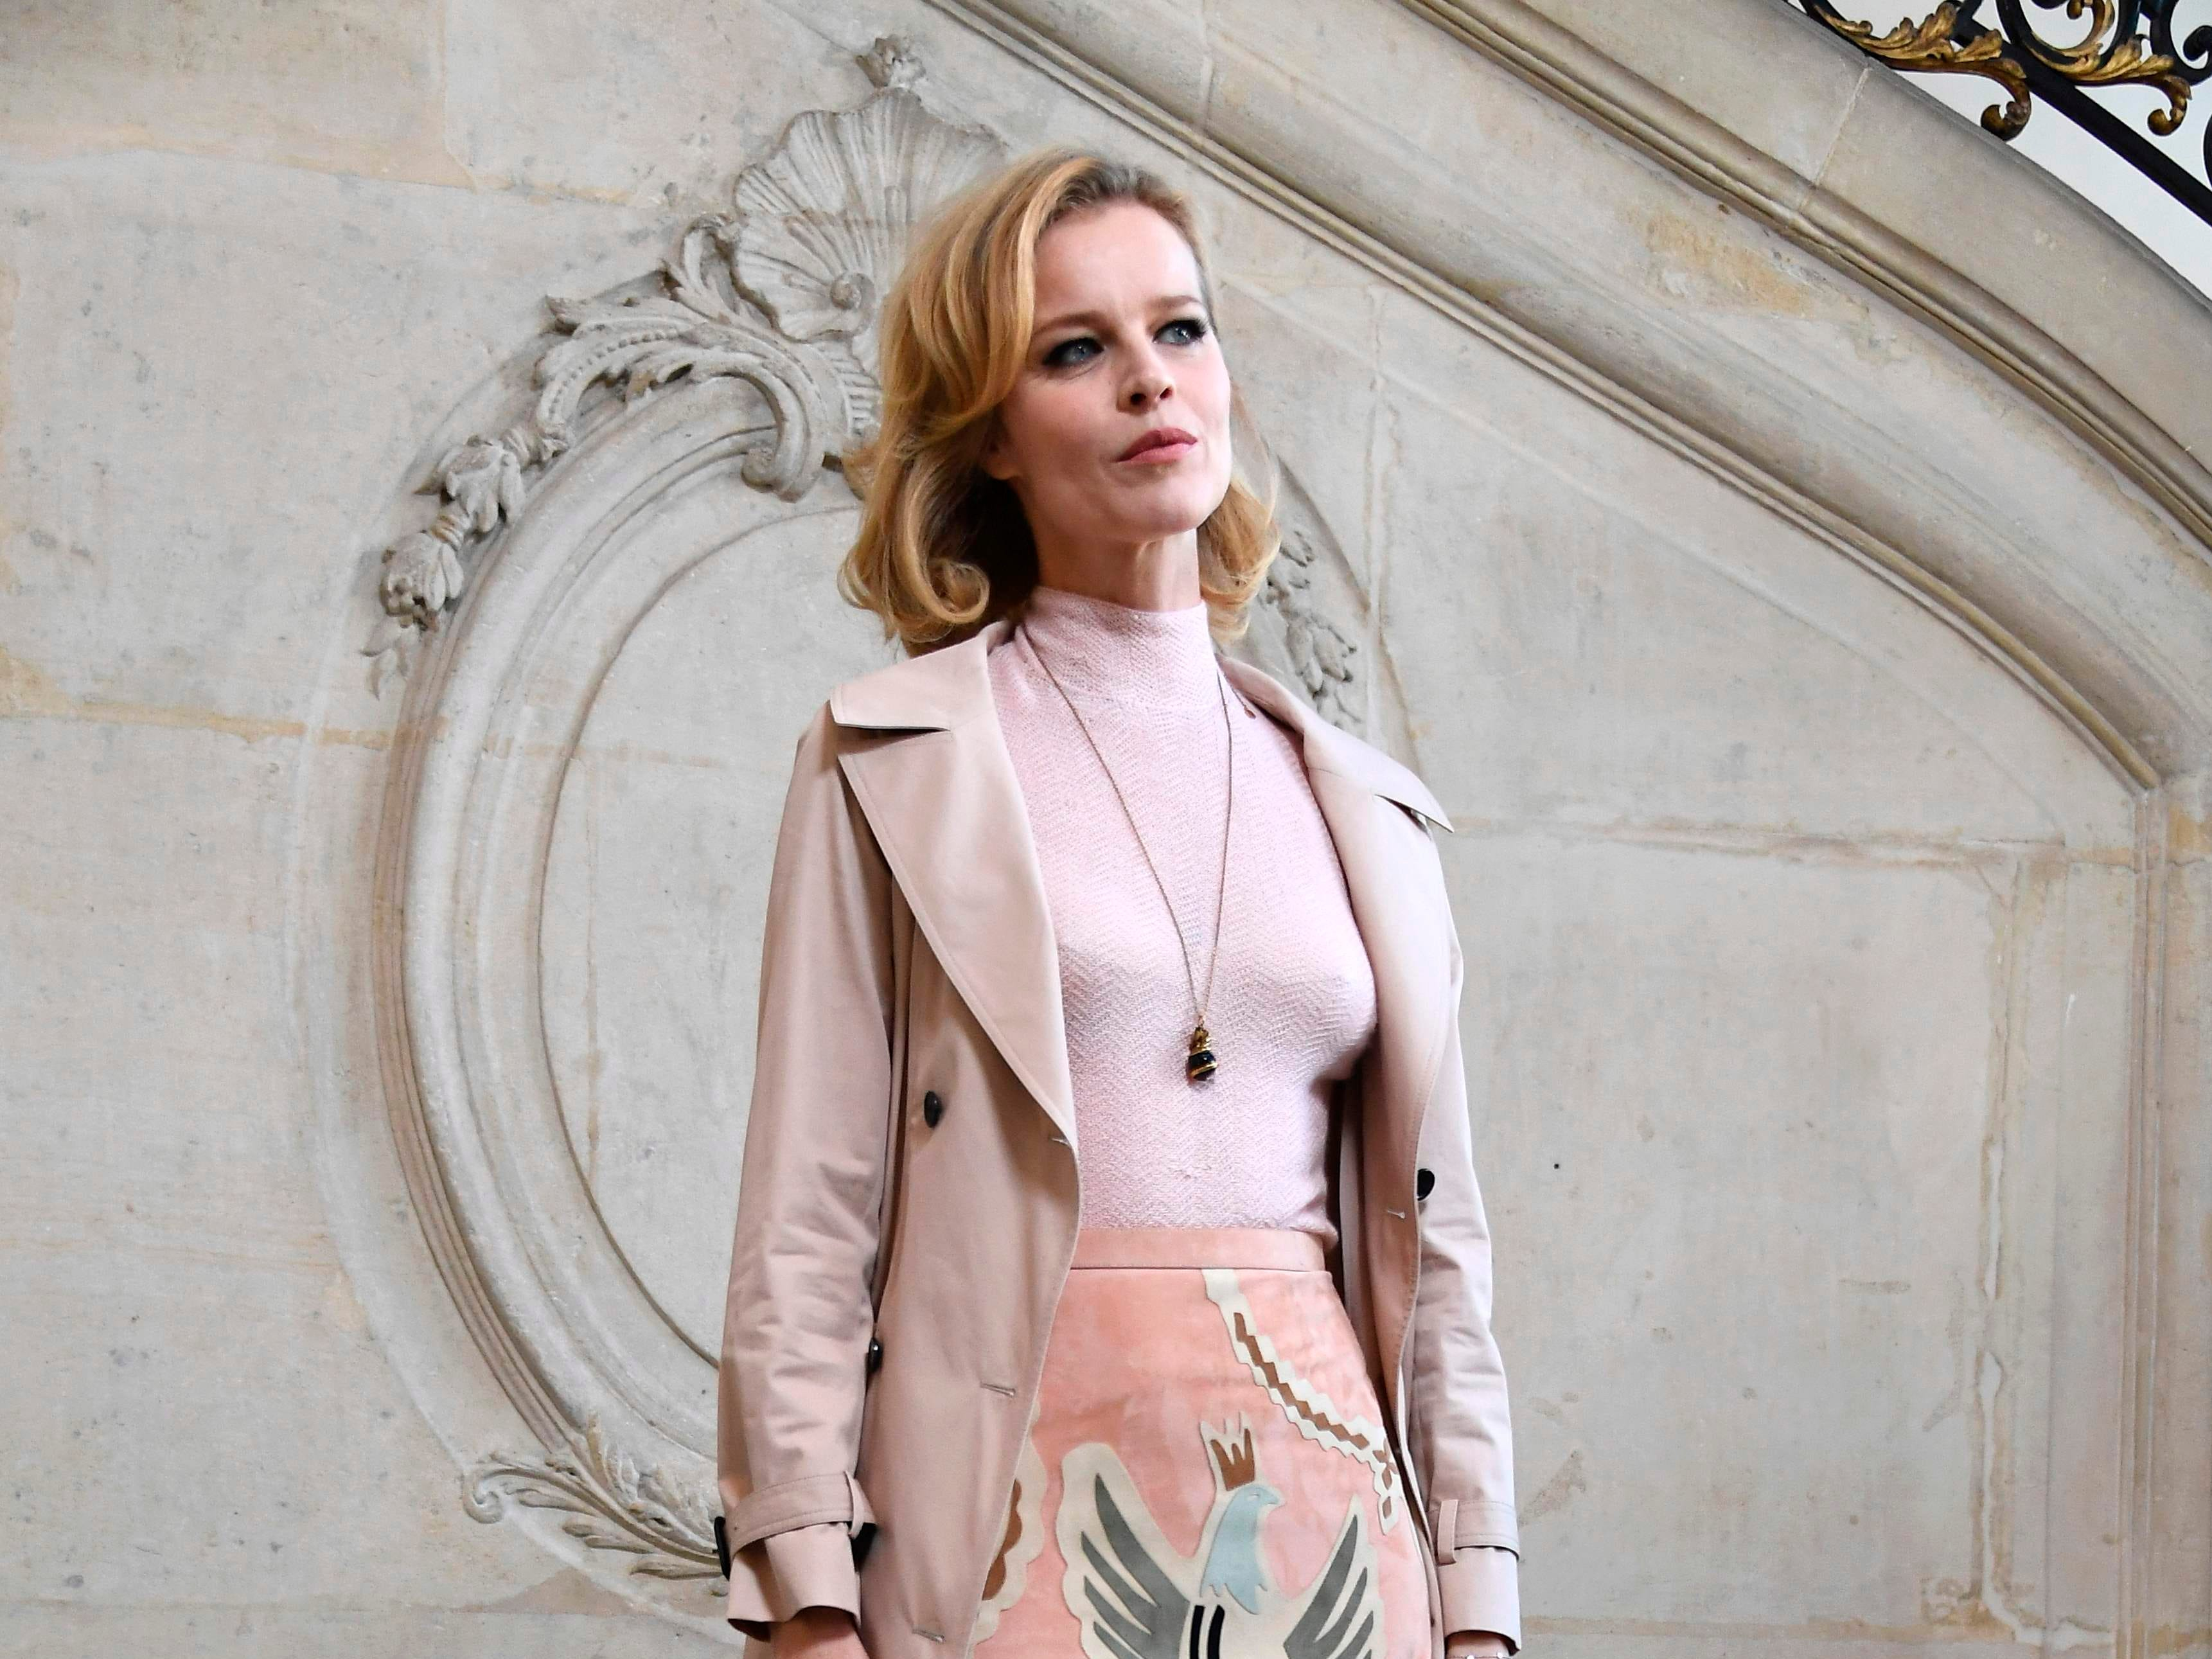 Eva Czech model and actress Eva Herzigova poses during a photocall prior to the 2019 Spring-Summer Haute Couture collection fashion show by Christian Dior in Paris, on January 21, 2019. (Photo by Anne-Christine POUJOULAT / AFP)ANNE-CHRISTINE POUJOULAT/AFP/Getty Images ORIG FILE ID: AFP_1CG6EL